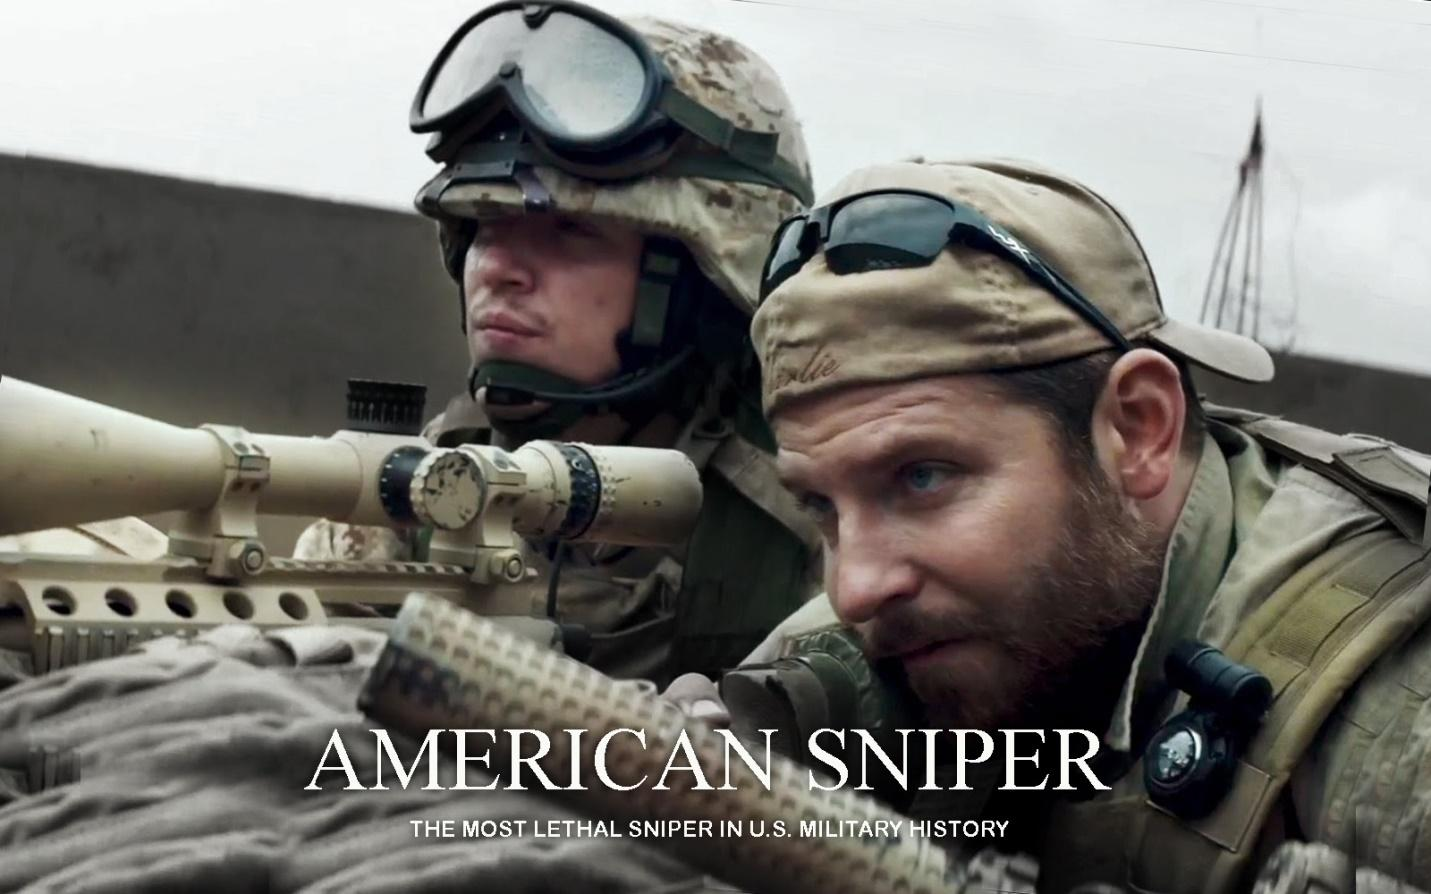 https://d3n8a8pro7vhmx.cloudfront.net/hancockparkpatriots/pages/332/attachments/original/1427391879/bradley-cooper-as-chris-kyle-in-american-sniper-movie-wallpaper.jpg?1427391879